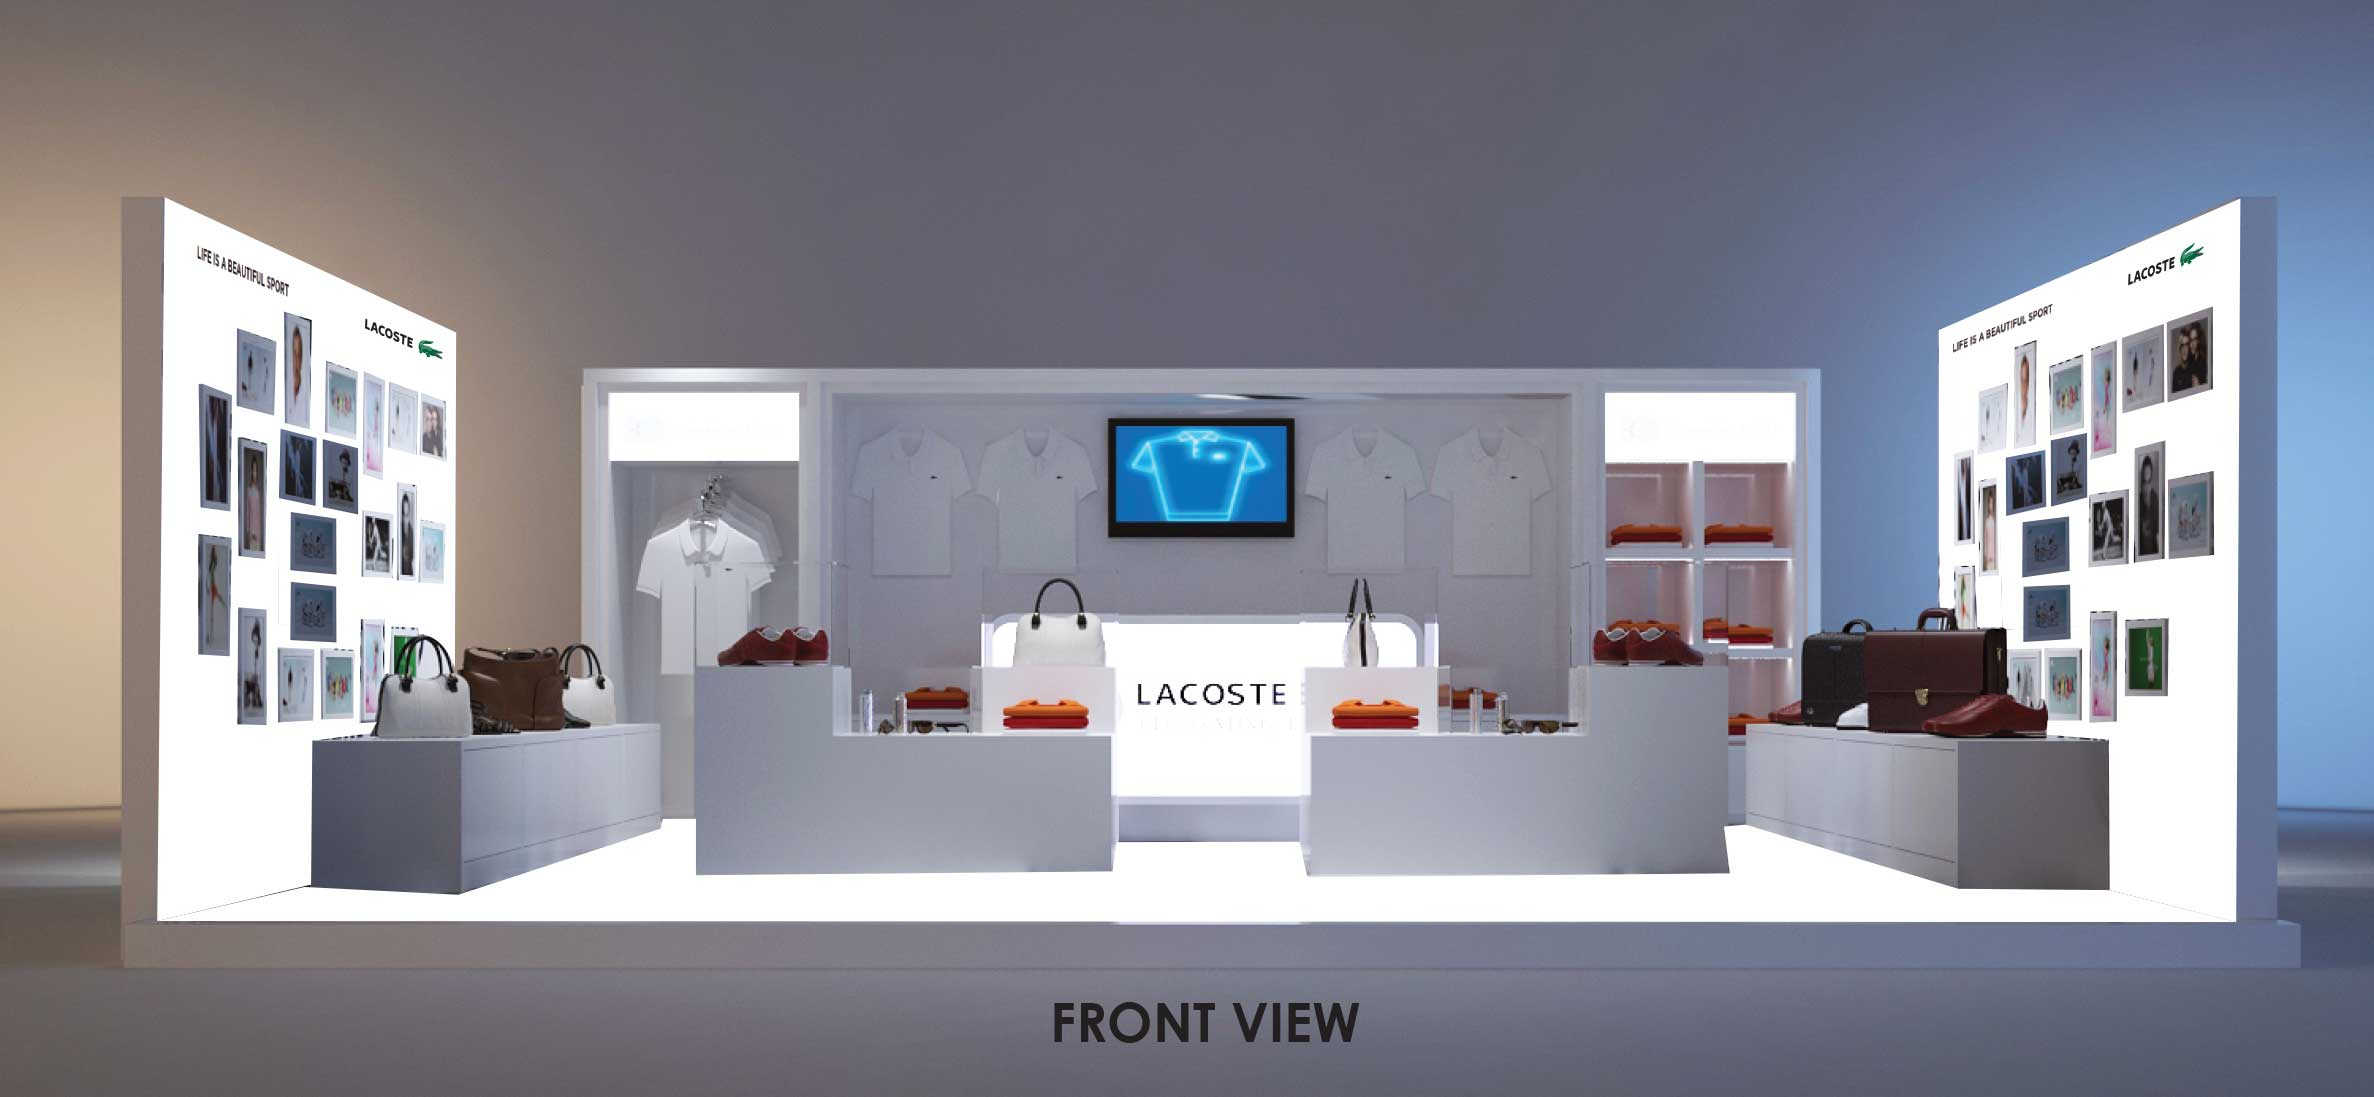 Lacoste-podium2-front-view